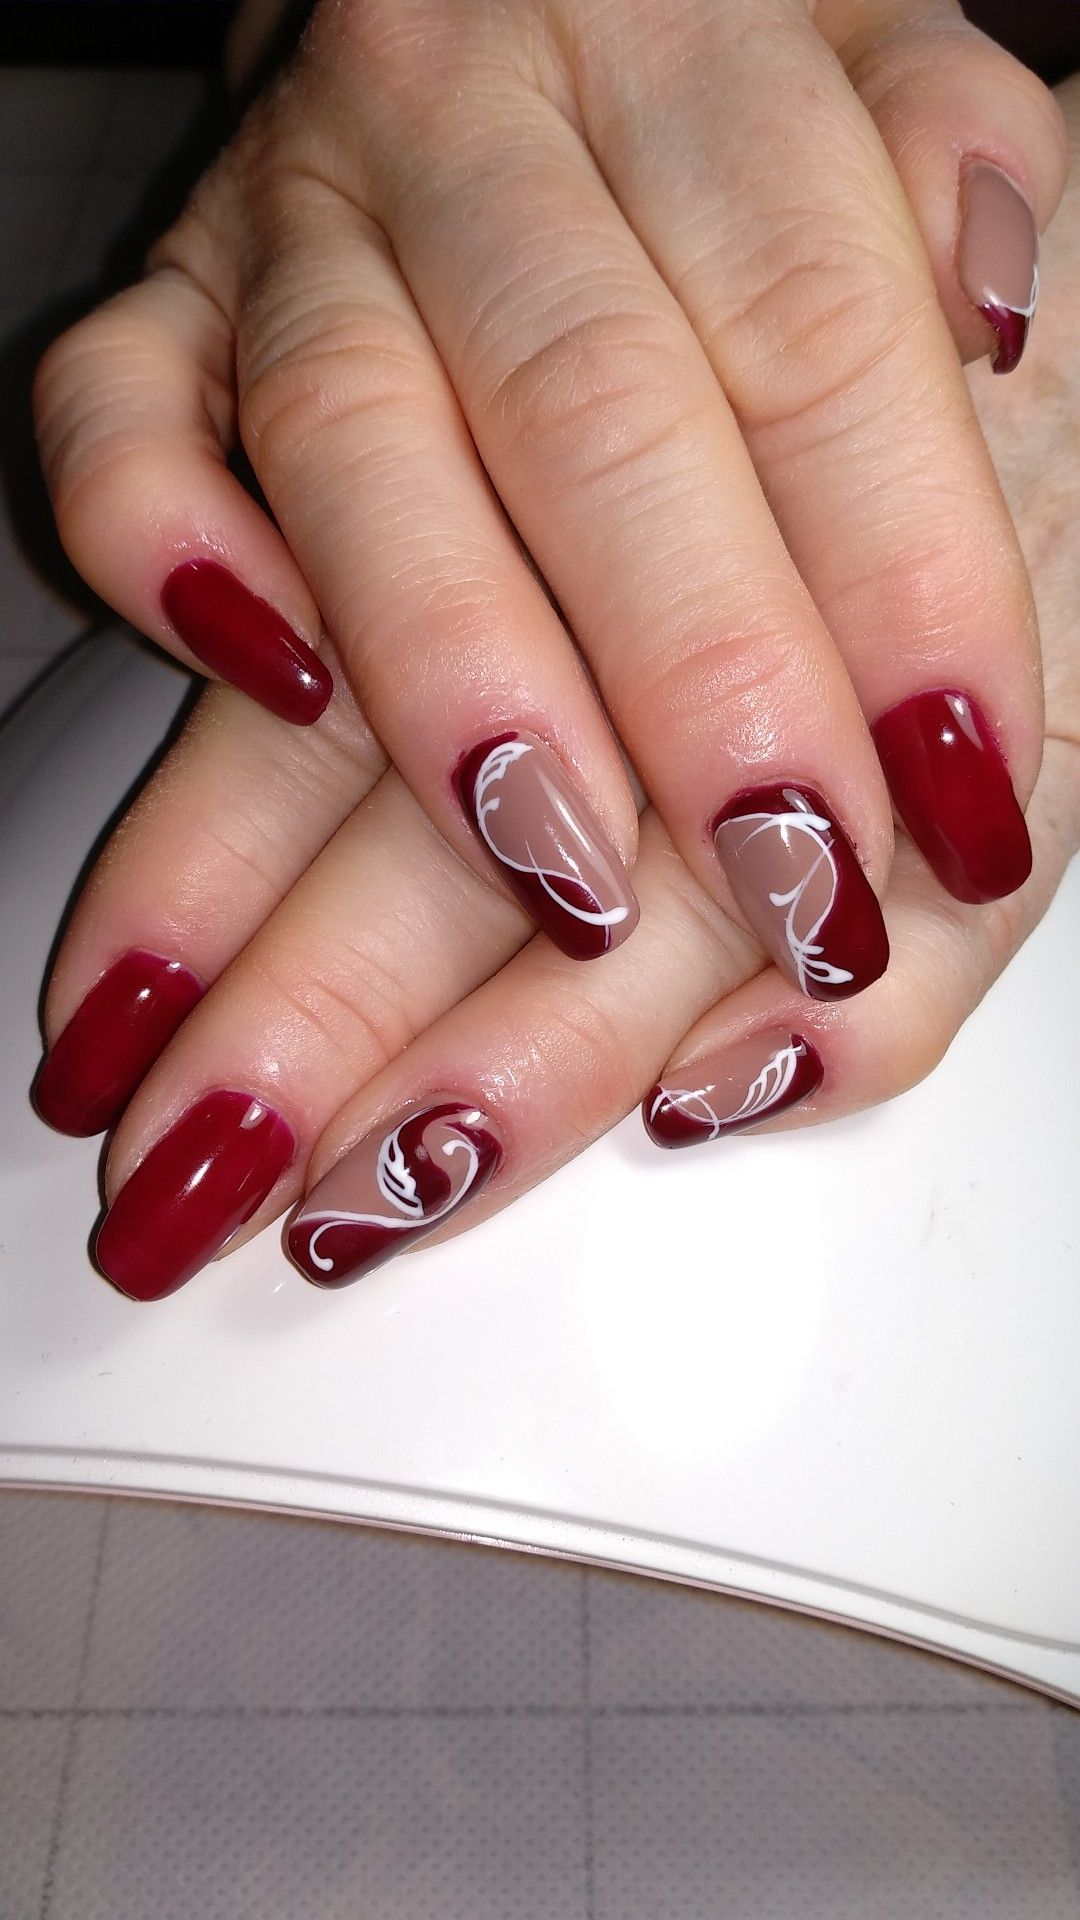 Schone Nagel Pin Von Sabine Hauke Auf Nageldesign Nail Designs Christmas